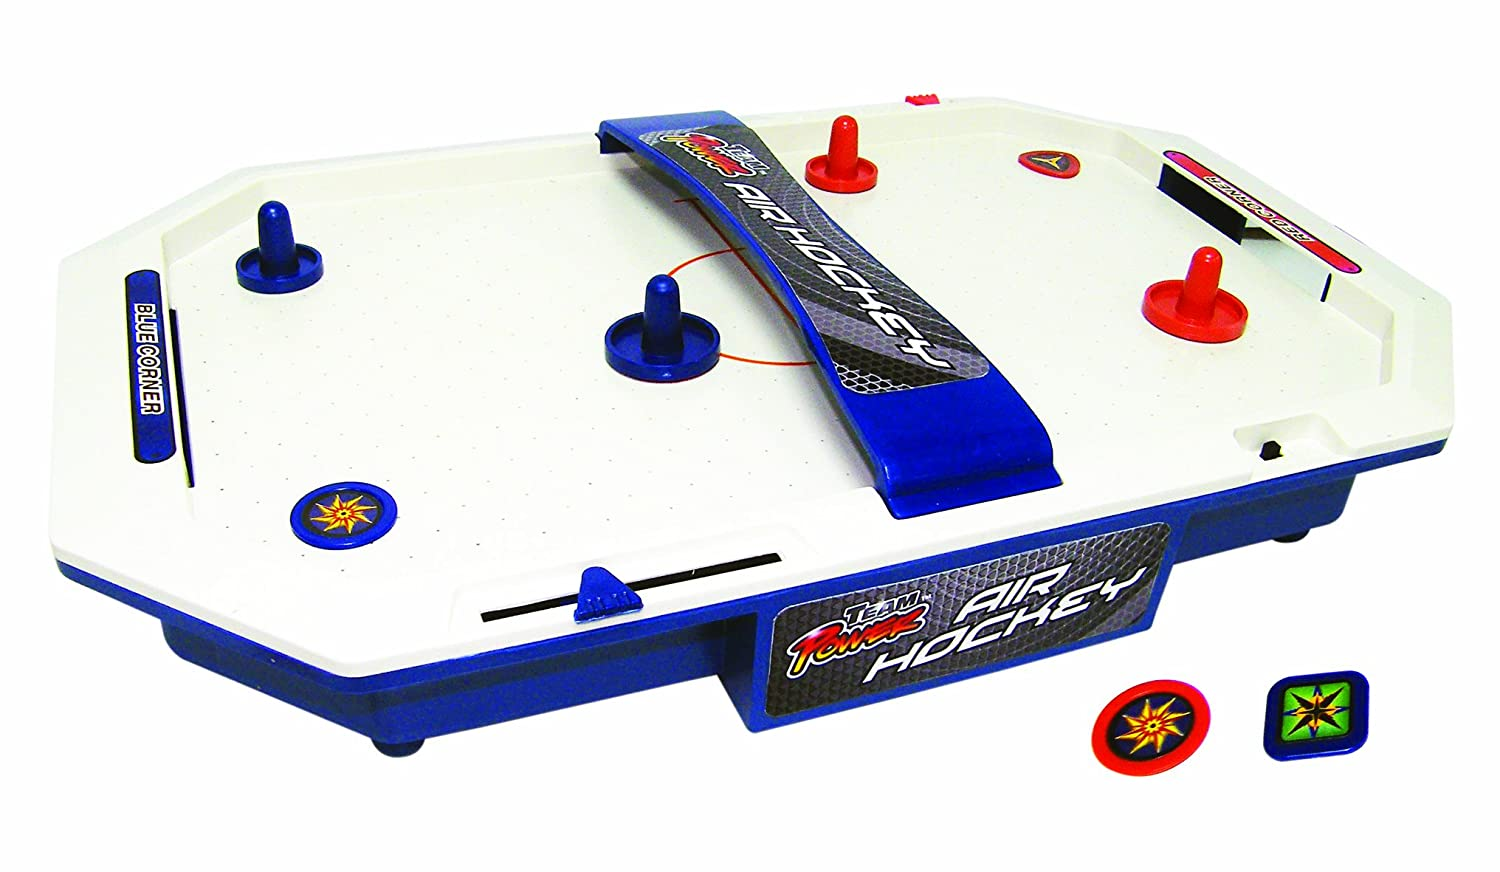 Team Power Battery-Operated Air Hockey Game 26344